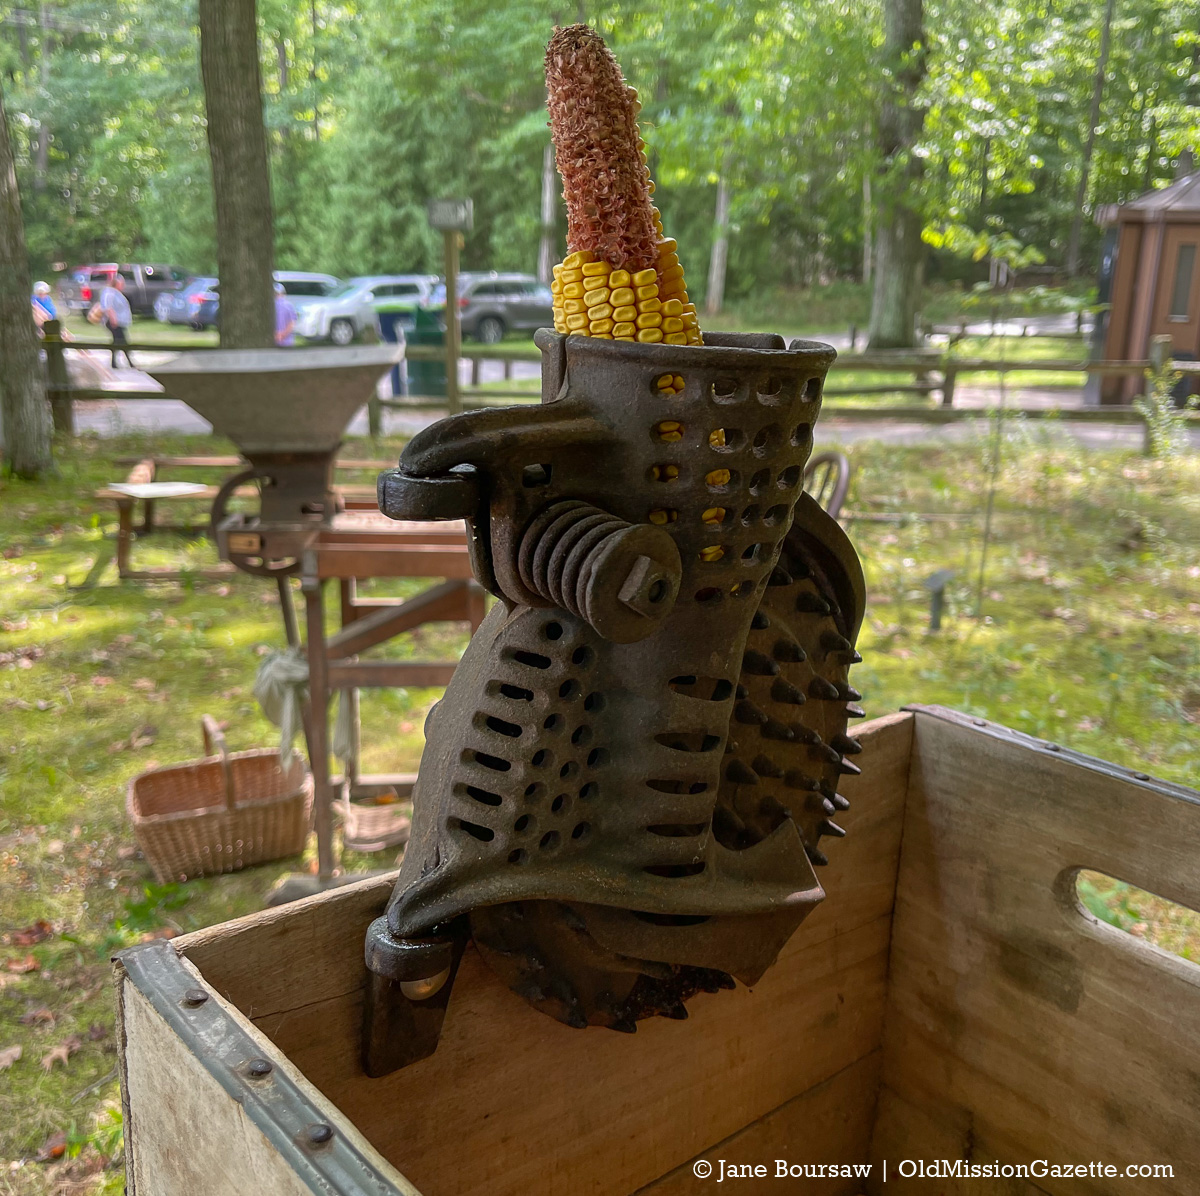 Antique Corn Shucker on display at Mission Point Lighthouse; Harvesting History event | Jane Boursaw Photo